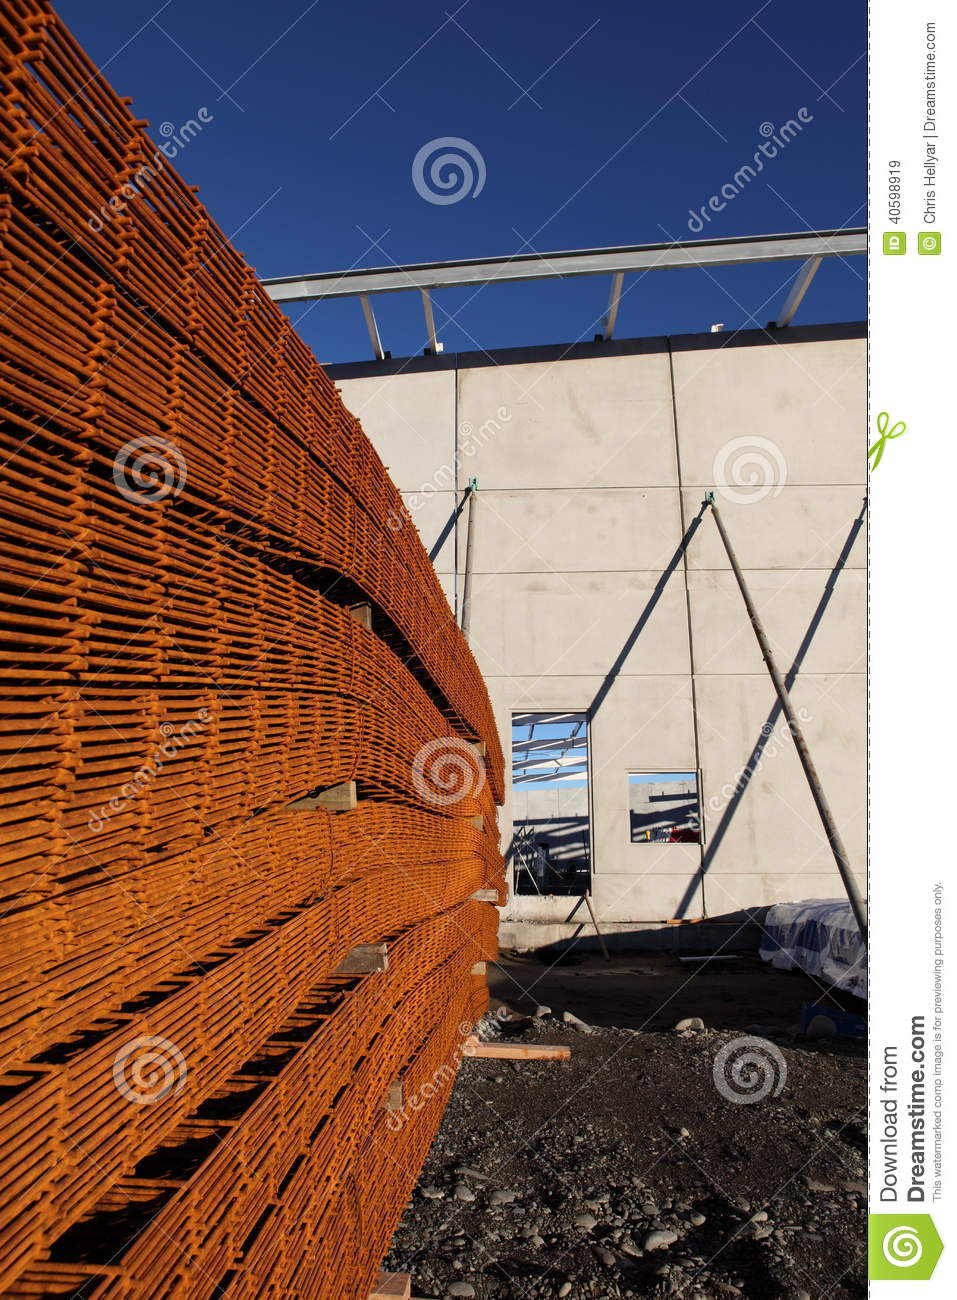 Stack of rusty reinforcing mesh.